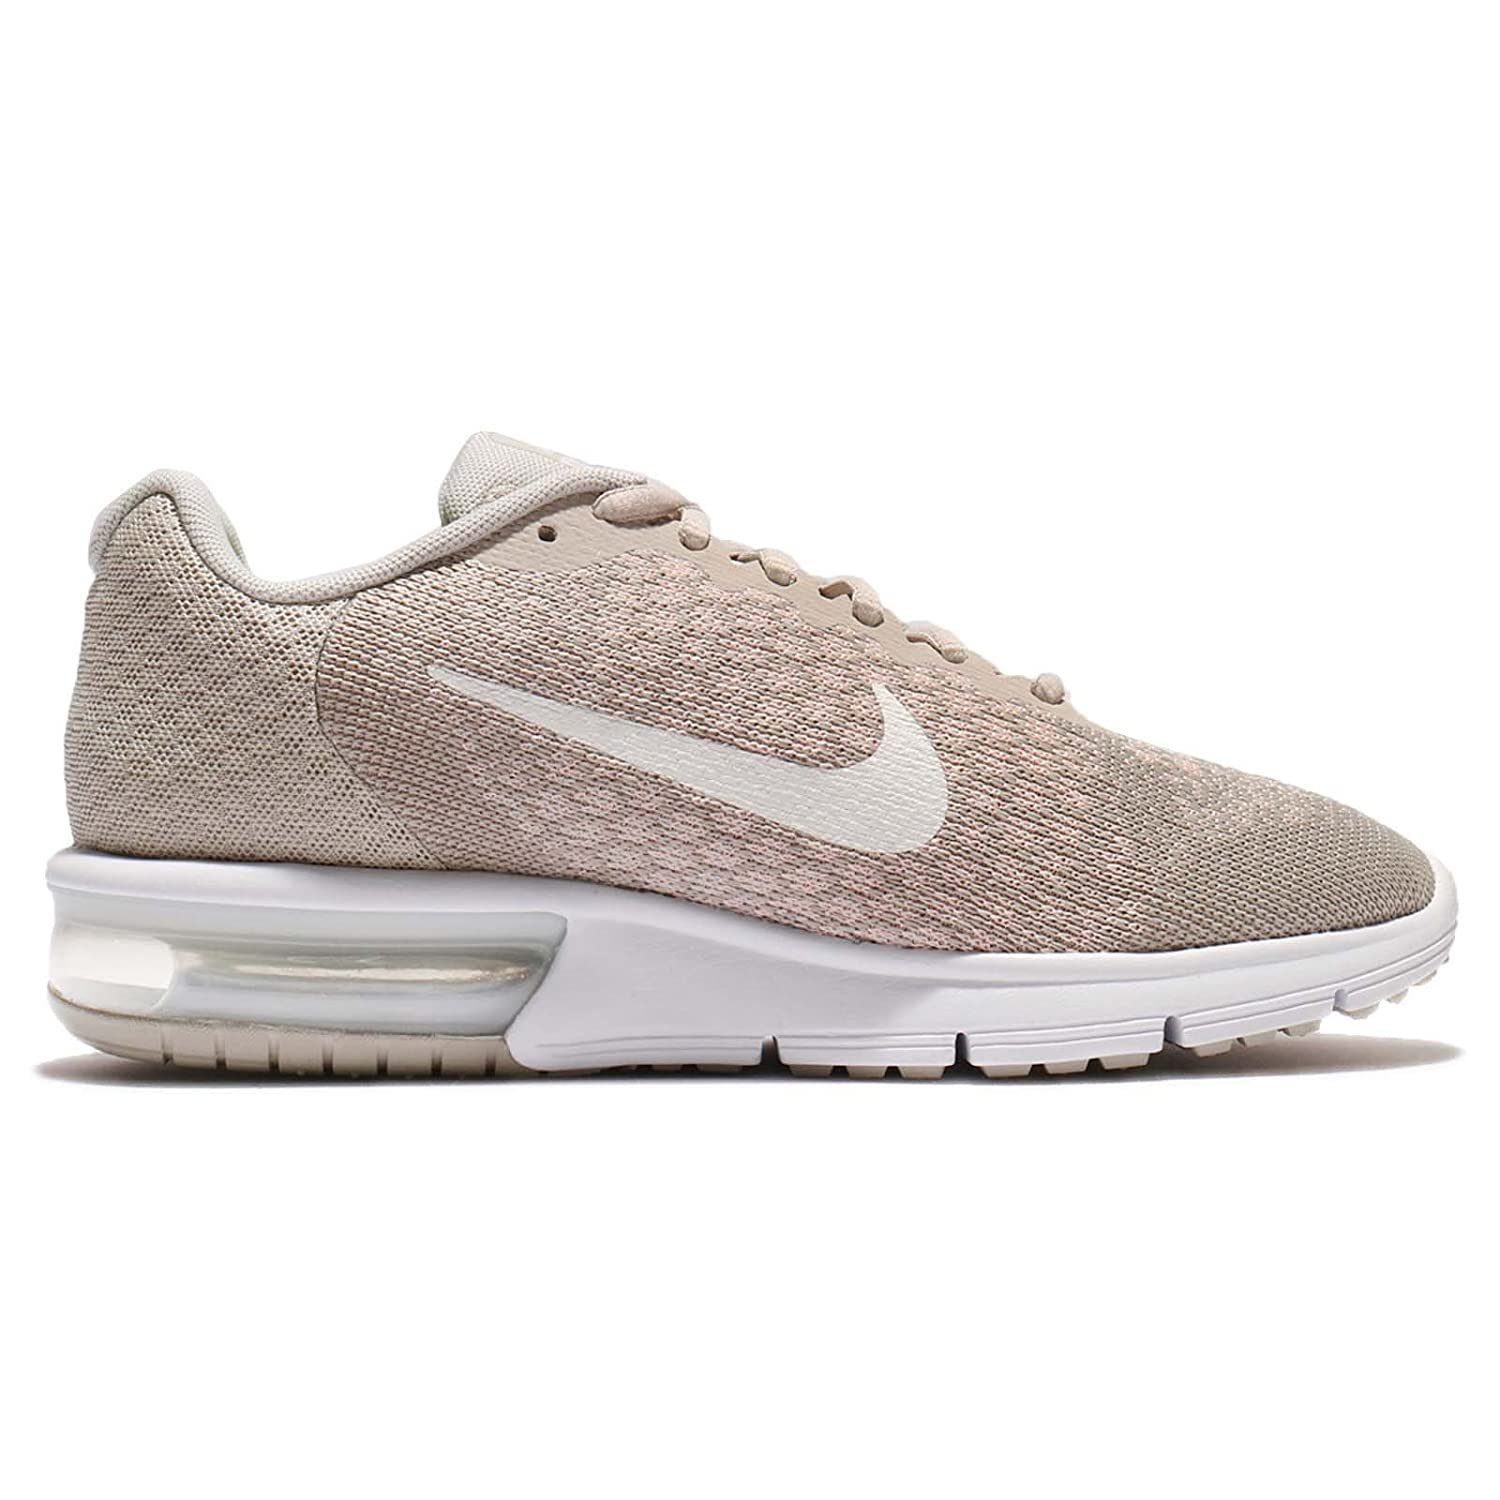 NIKE Men's Air Max B007T84FJ8 Sequent 2 Running Shoe B007T84FJ8 Max 11 B(M) US|Pale Grey/Sail-light Bone-sunset Tint 8601f2